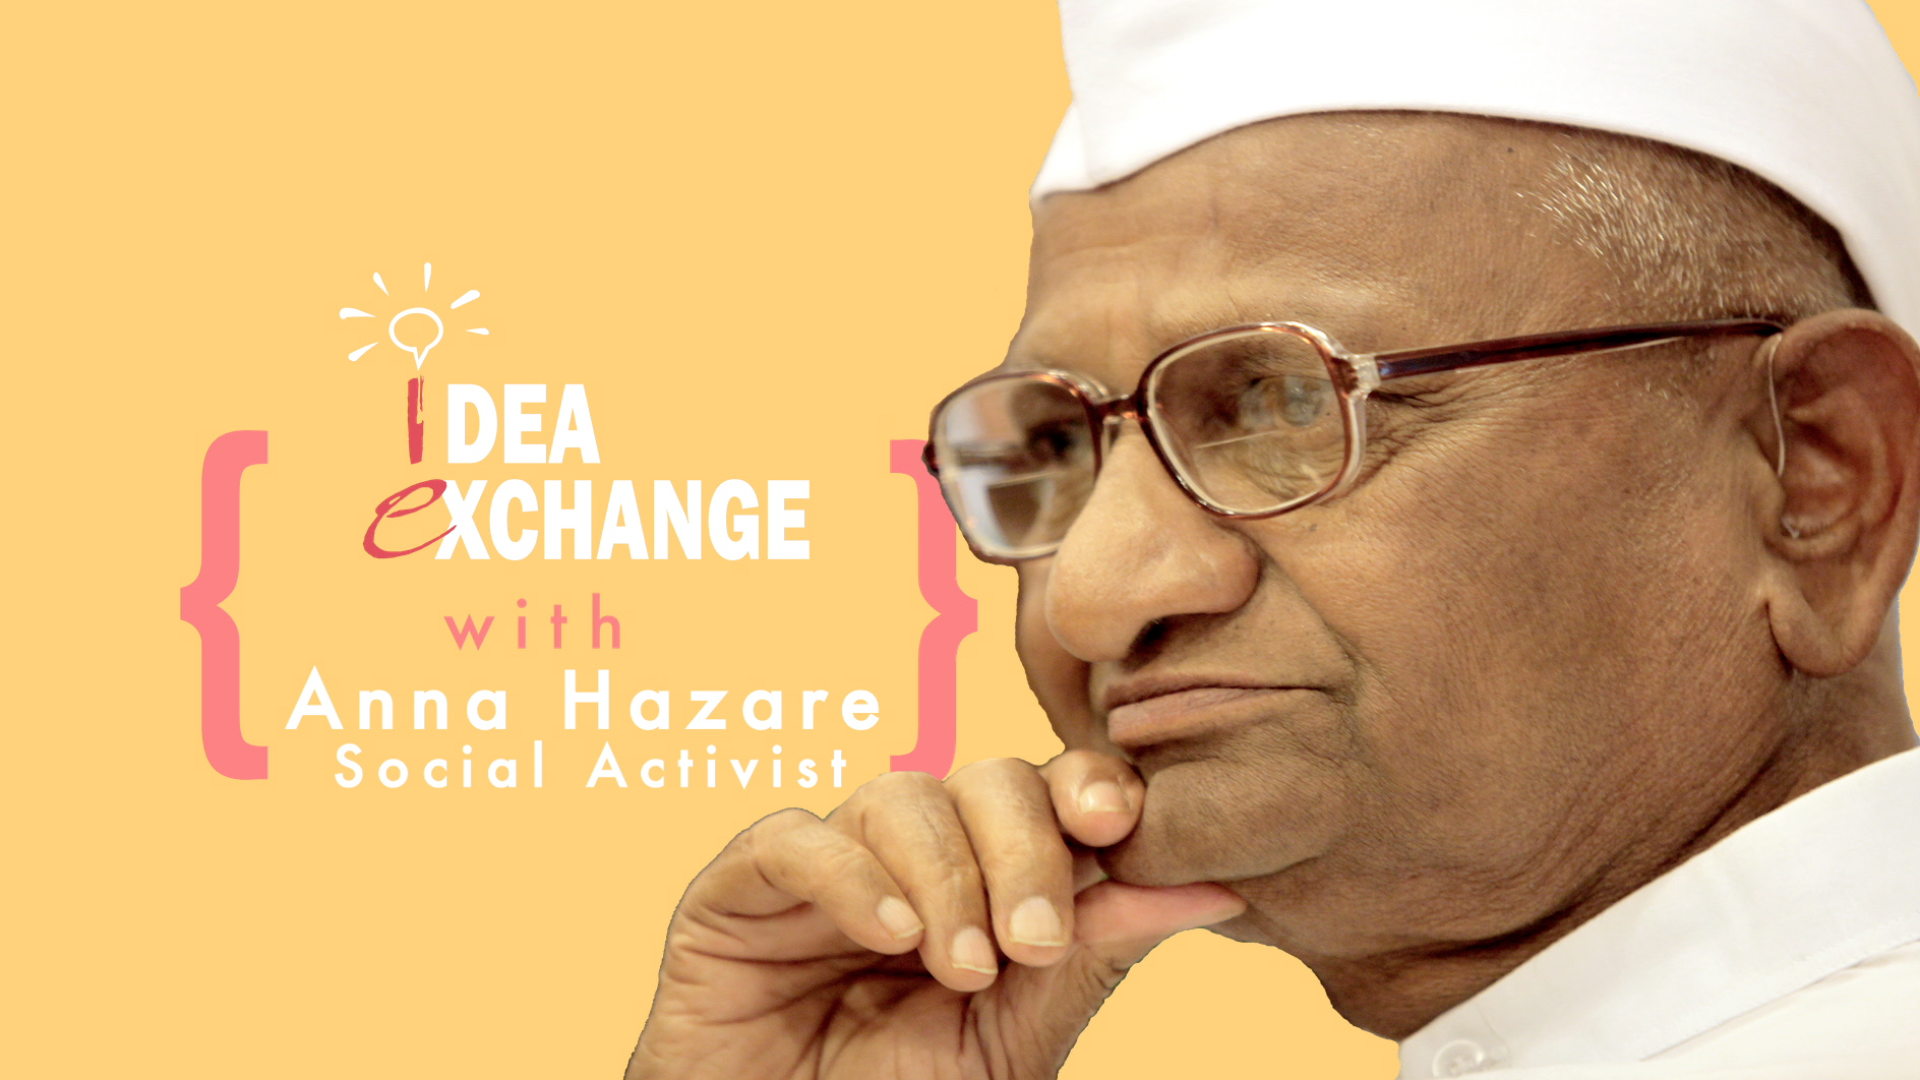 Arvind Kejriwal is in a party now, our paths are different: Anna Hazare